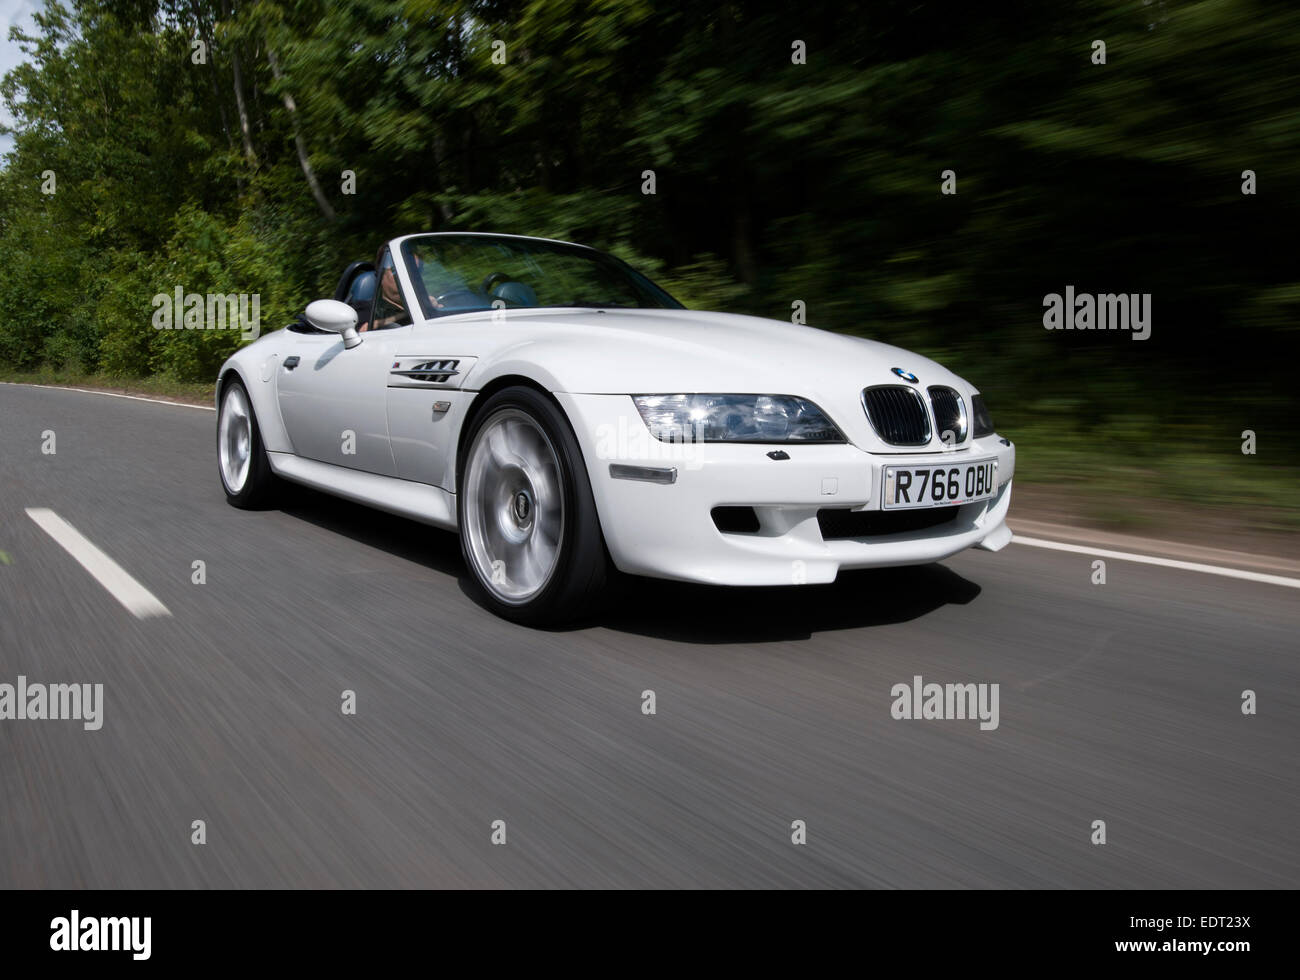 1997 bmw z3 cabrio sportwagen stockfoto bild 77360526. Black Bedroom Furniture Sets. Home Design Ideas